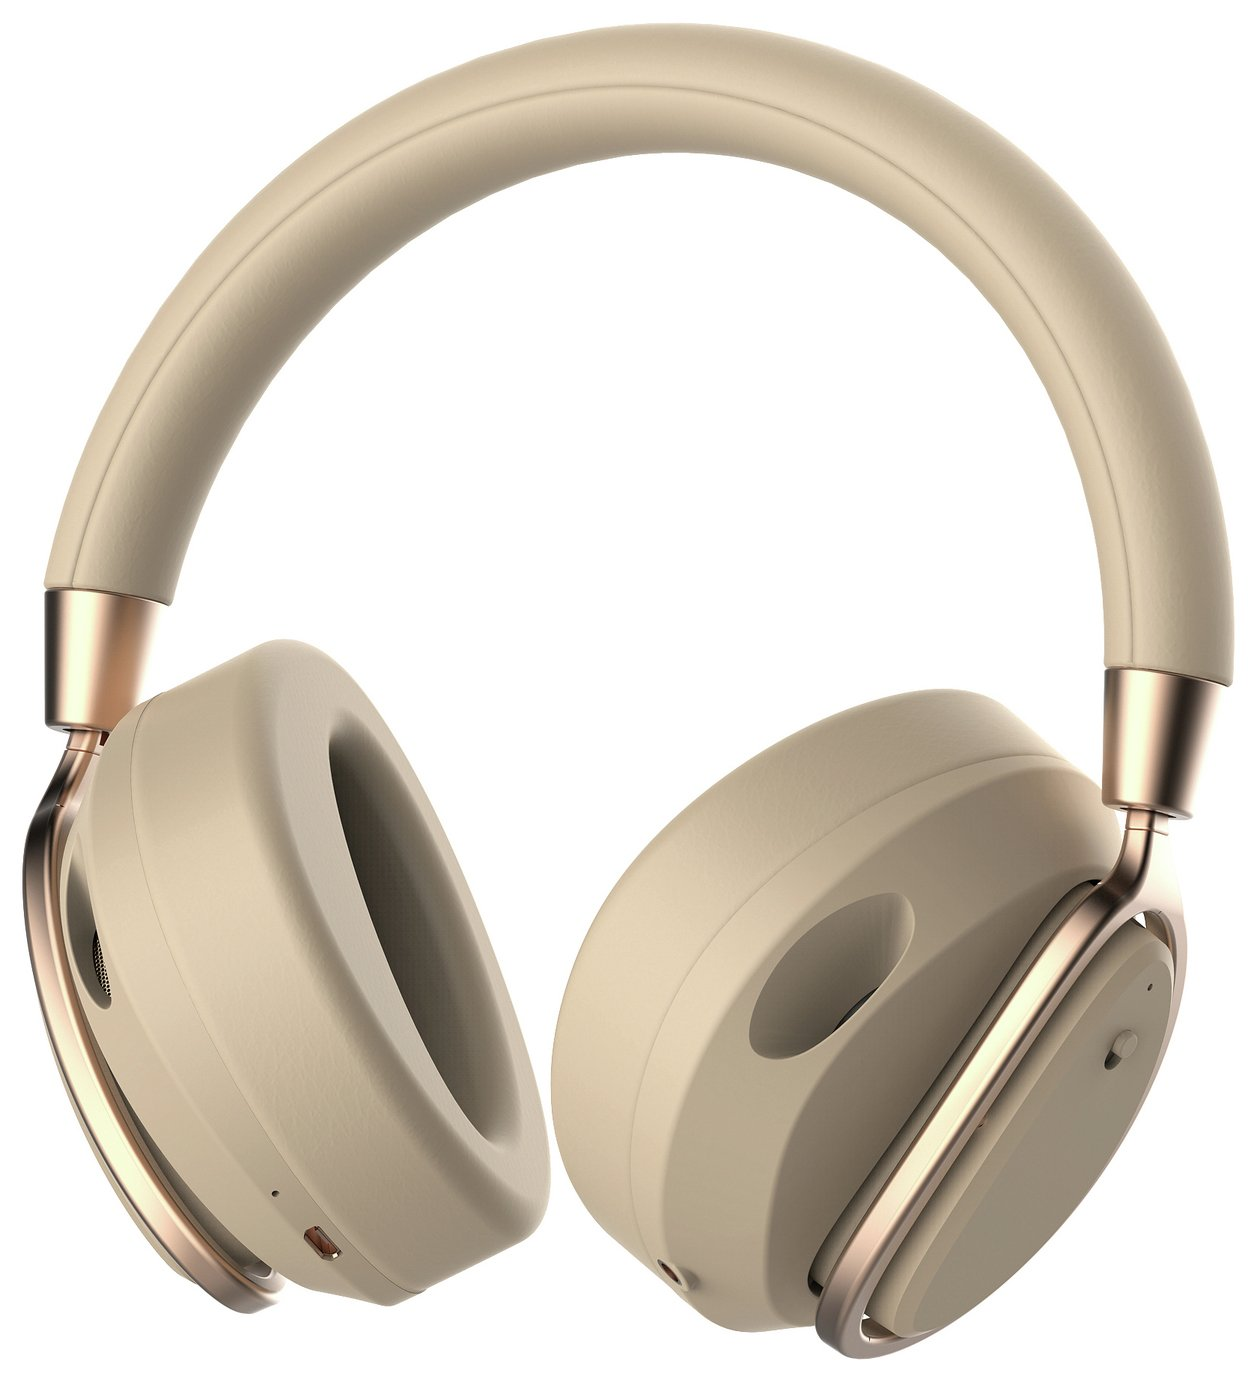 Image of DeFunc Mute Plus Wireless On-Ear Headphones - Gold